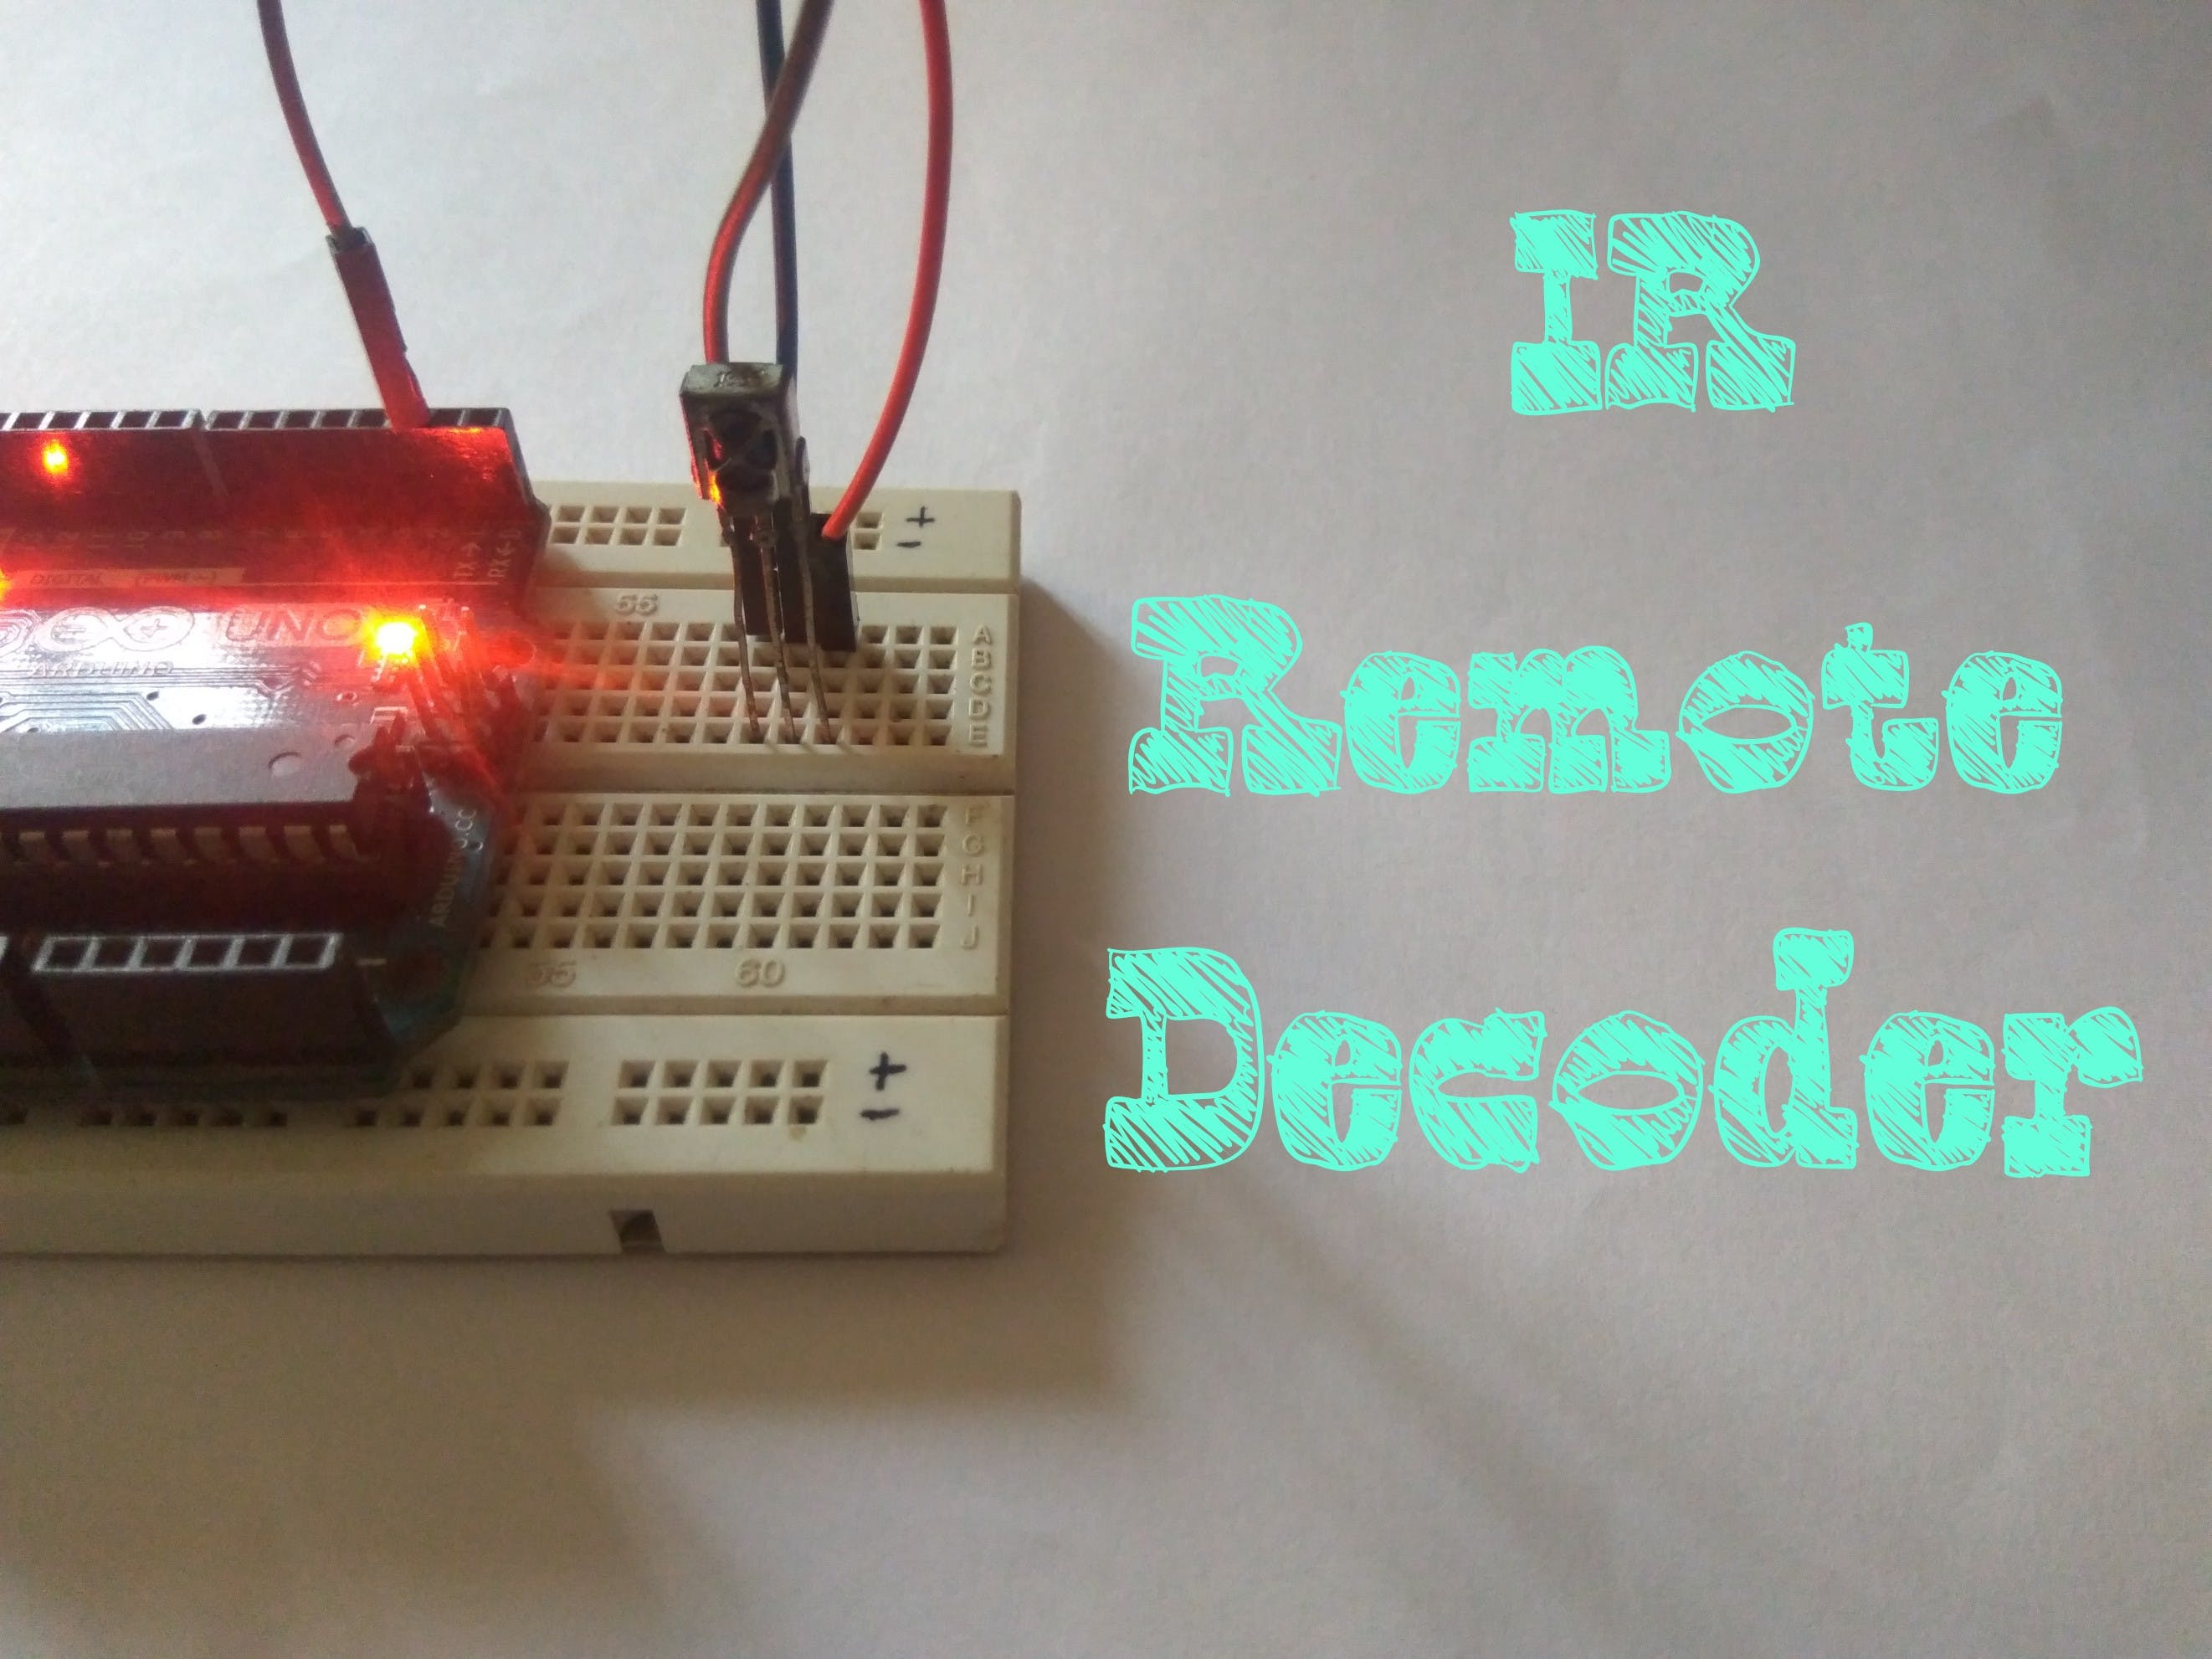 IR Remote Decoder Using Arduino